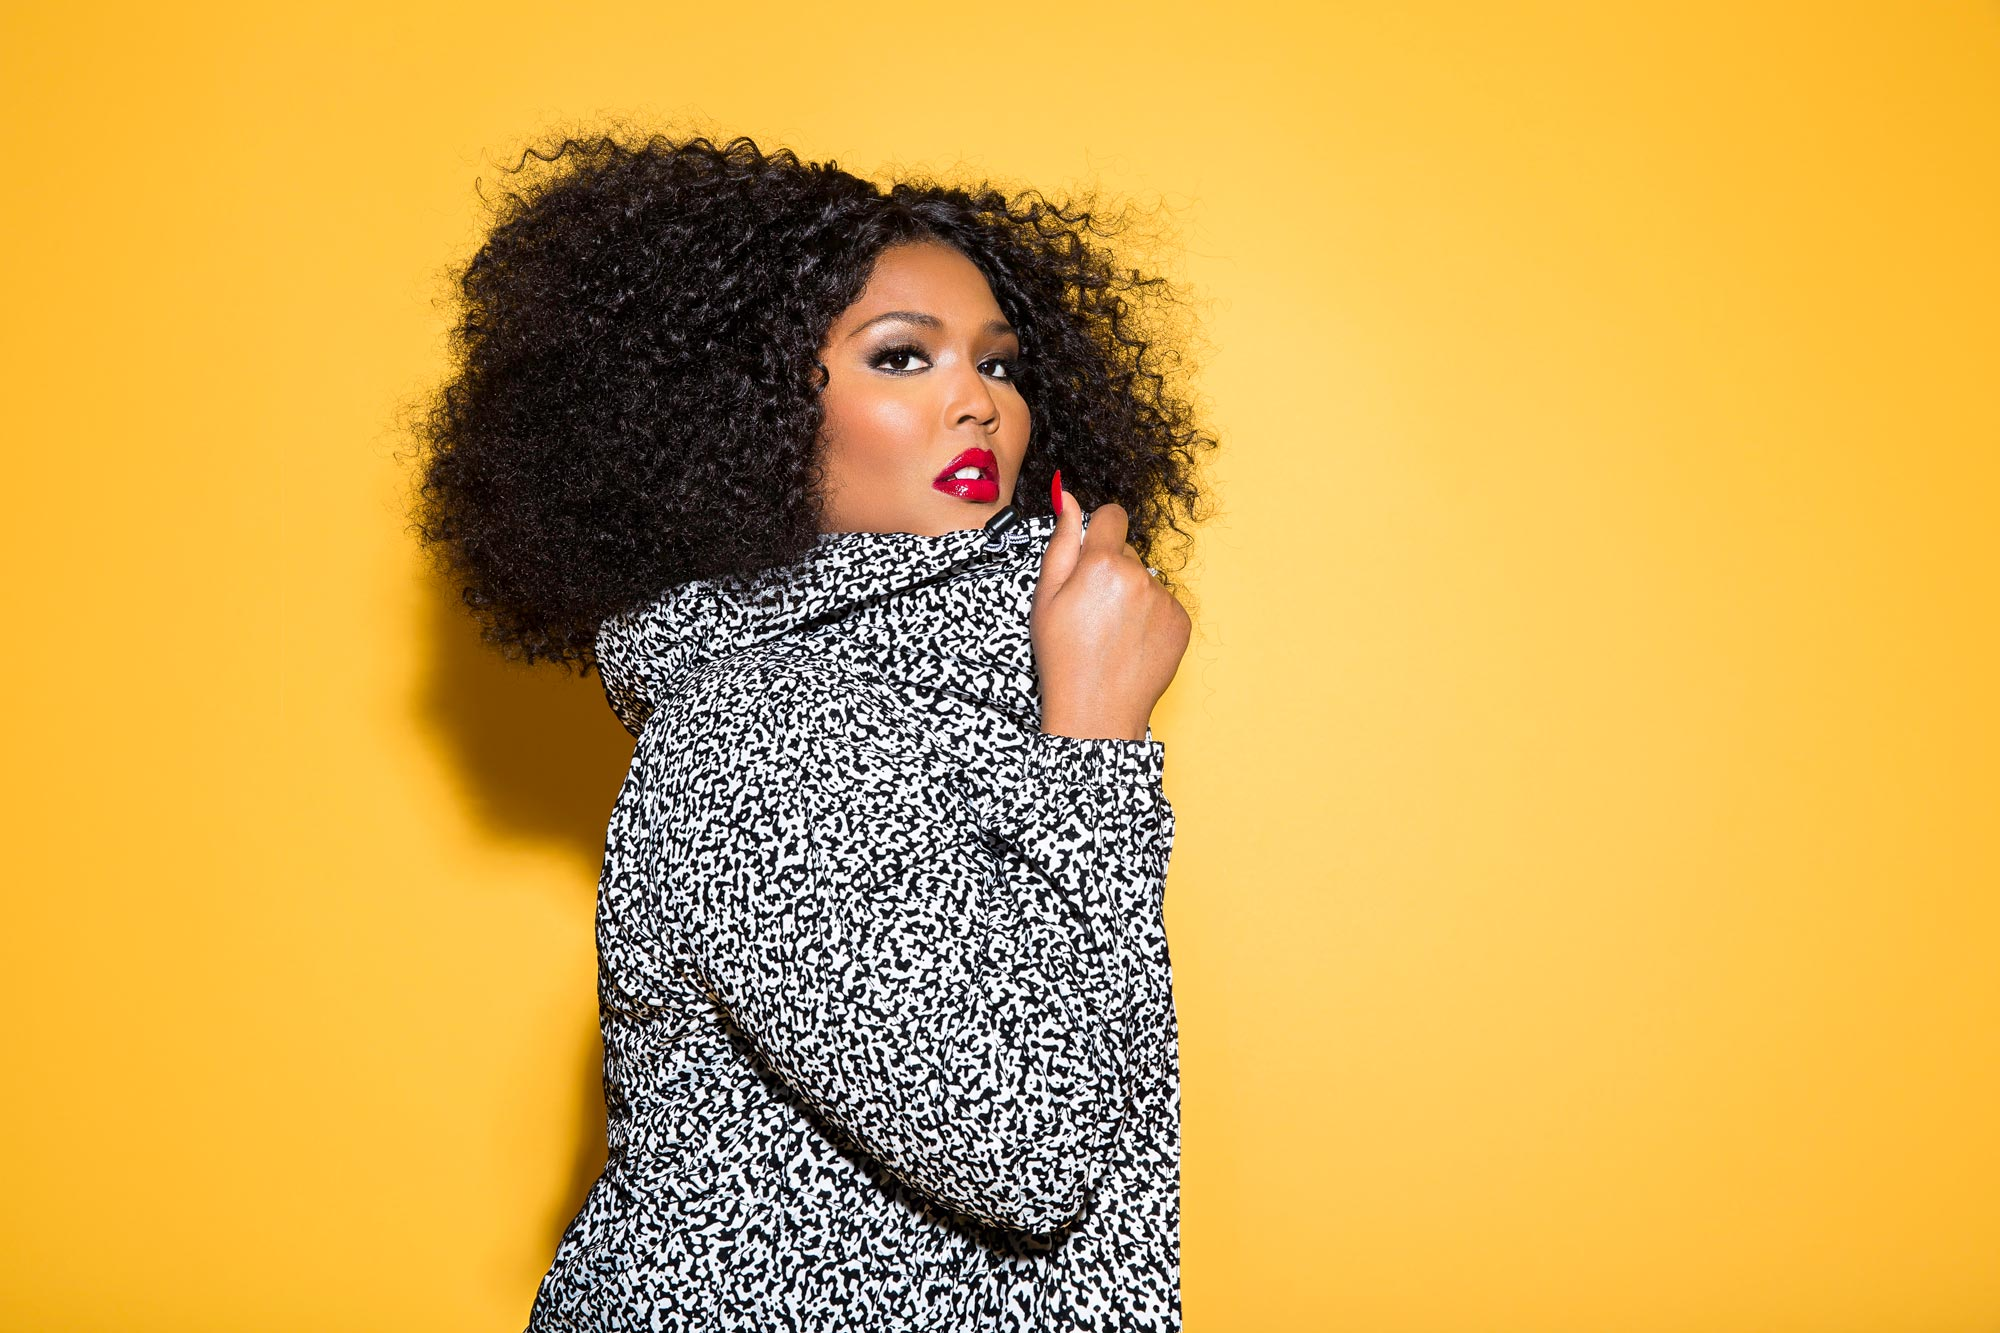 Lizzo-Press-Photo-6-High-Res-Jabari-Jacobs-